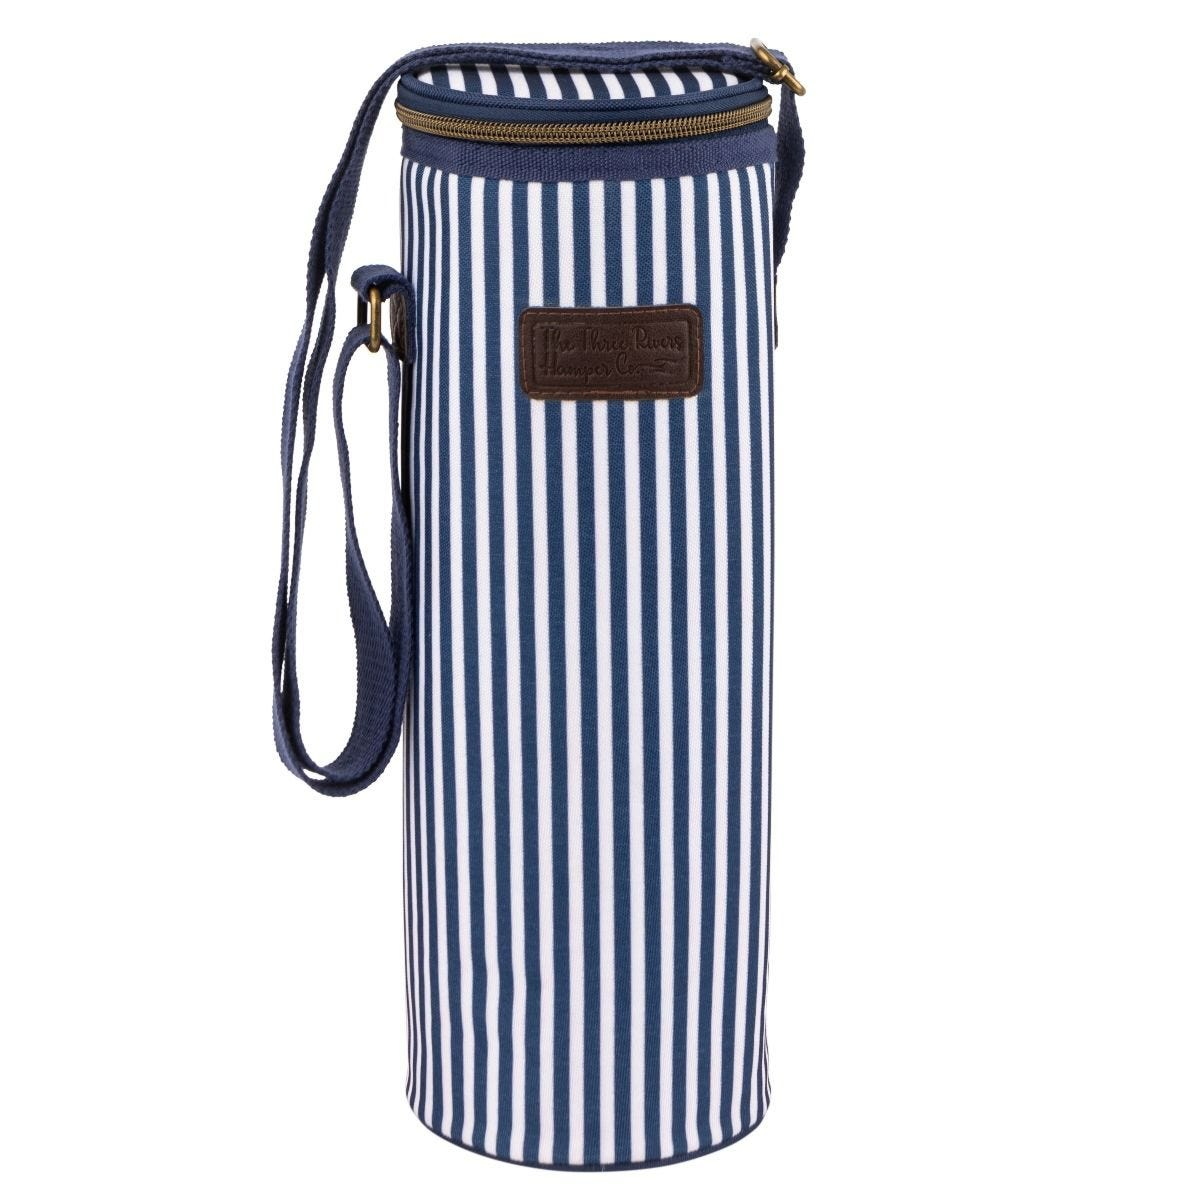 Three Rivers Insulated Bottle Bag - Single